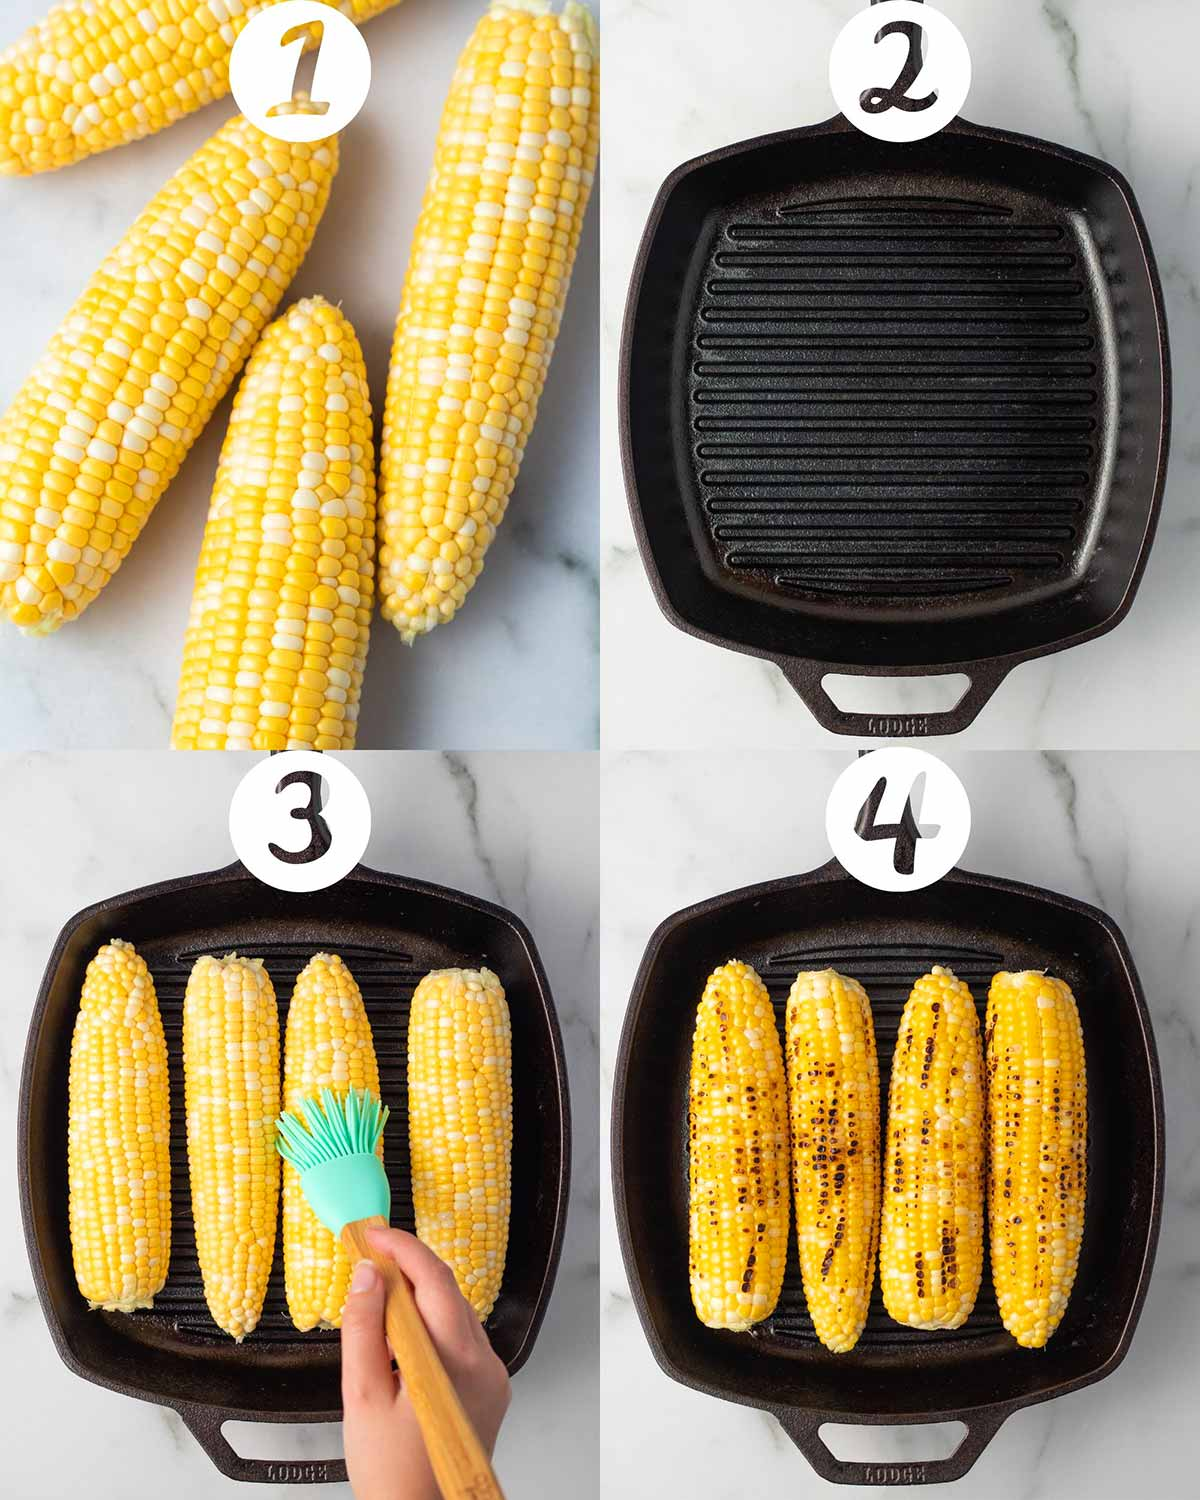 A step-by-step collage of four images: the first shows 4 ears of corn on the cob shucked, the second shows a cast iron grill pan, the third shows corn on the grill pan being brushed with olive oil, and the fourth shows the corn grilled with the char marks.